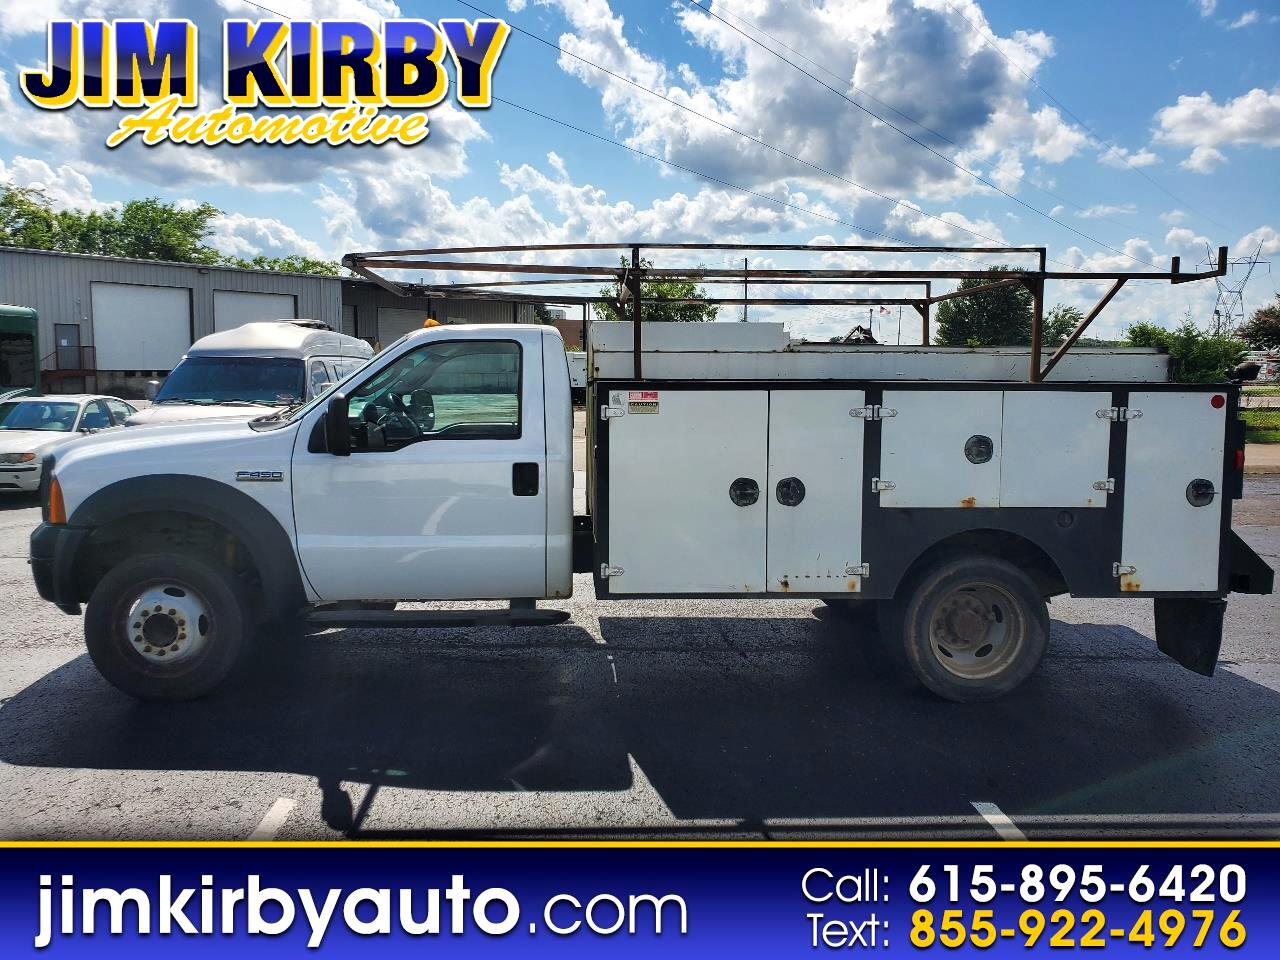 Ford F-450 SD Chassis Cab 2WD 2007